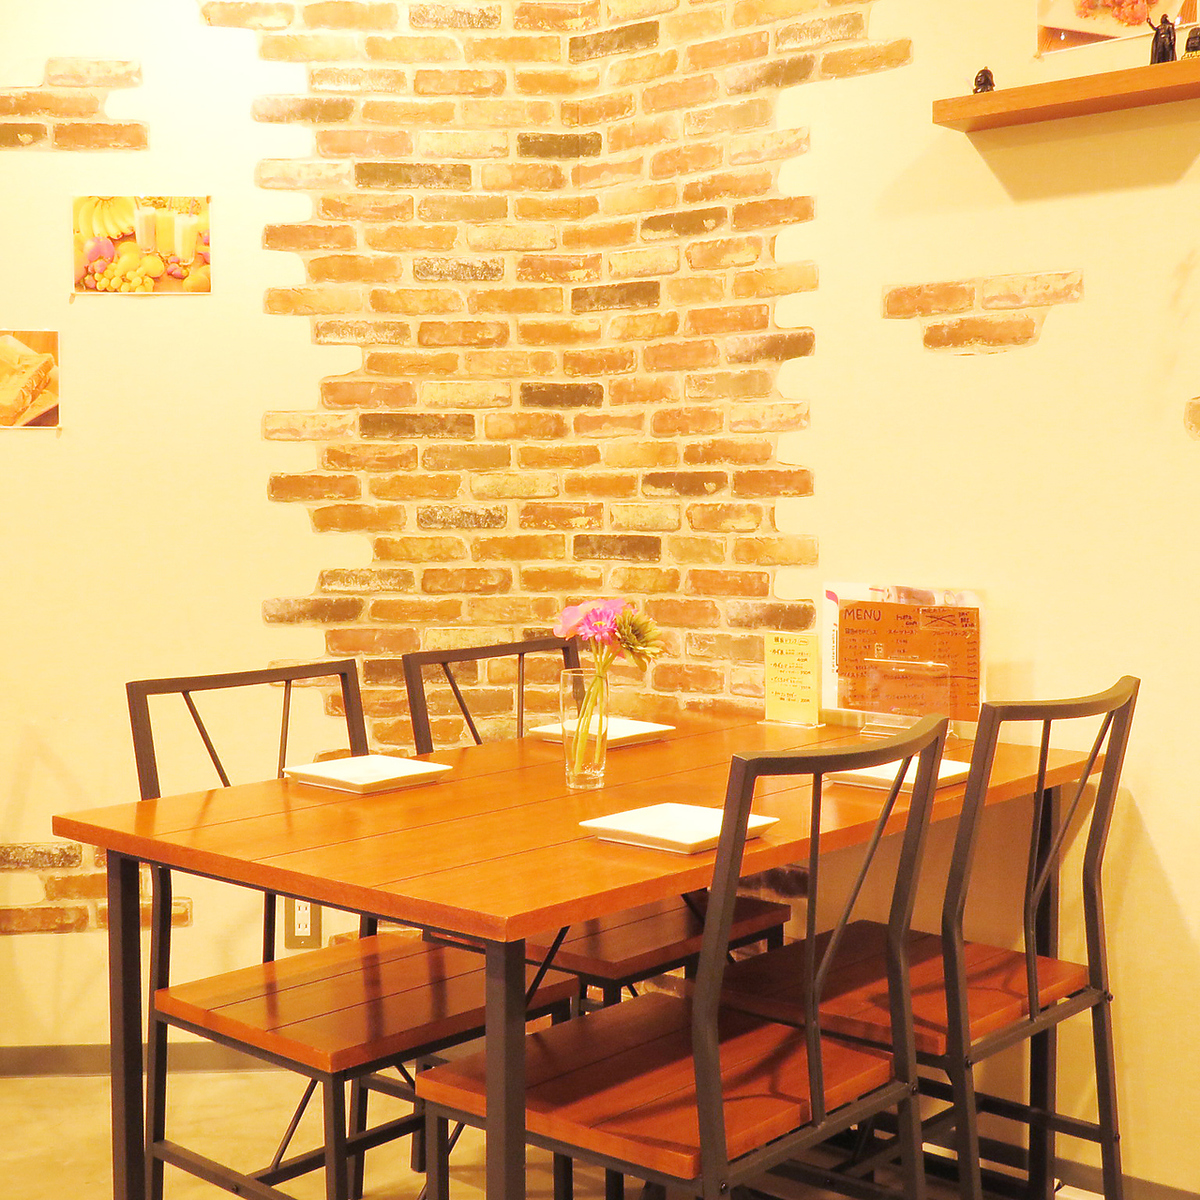 We have seats for 2 to 4 people.You can meet various needs such as date, break, late lunch ♪